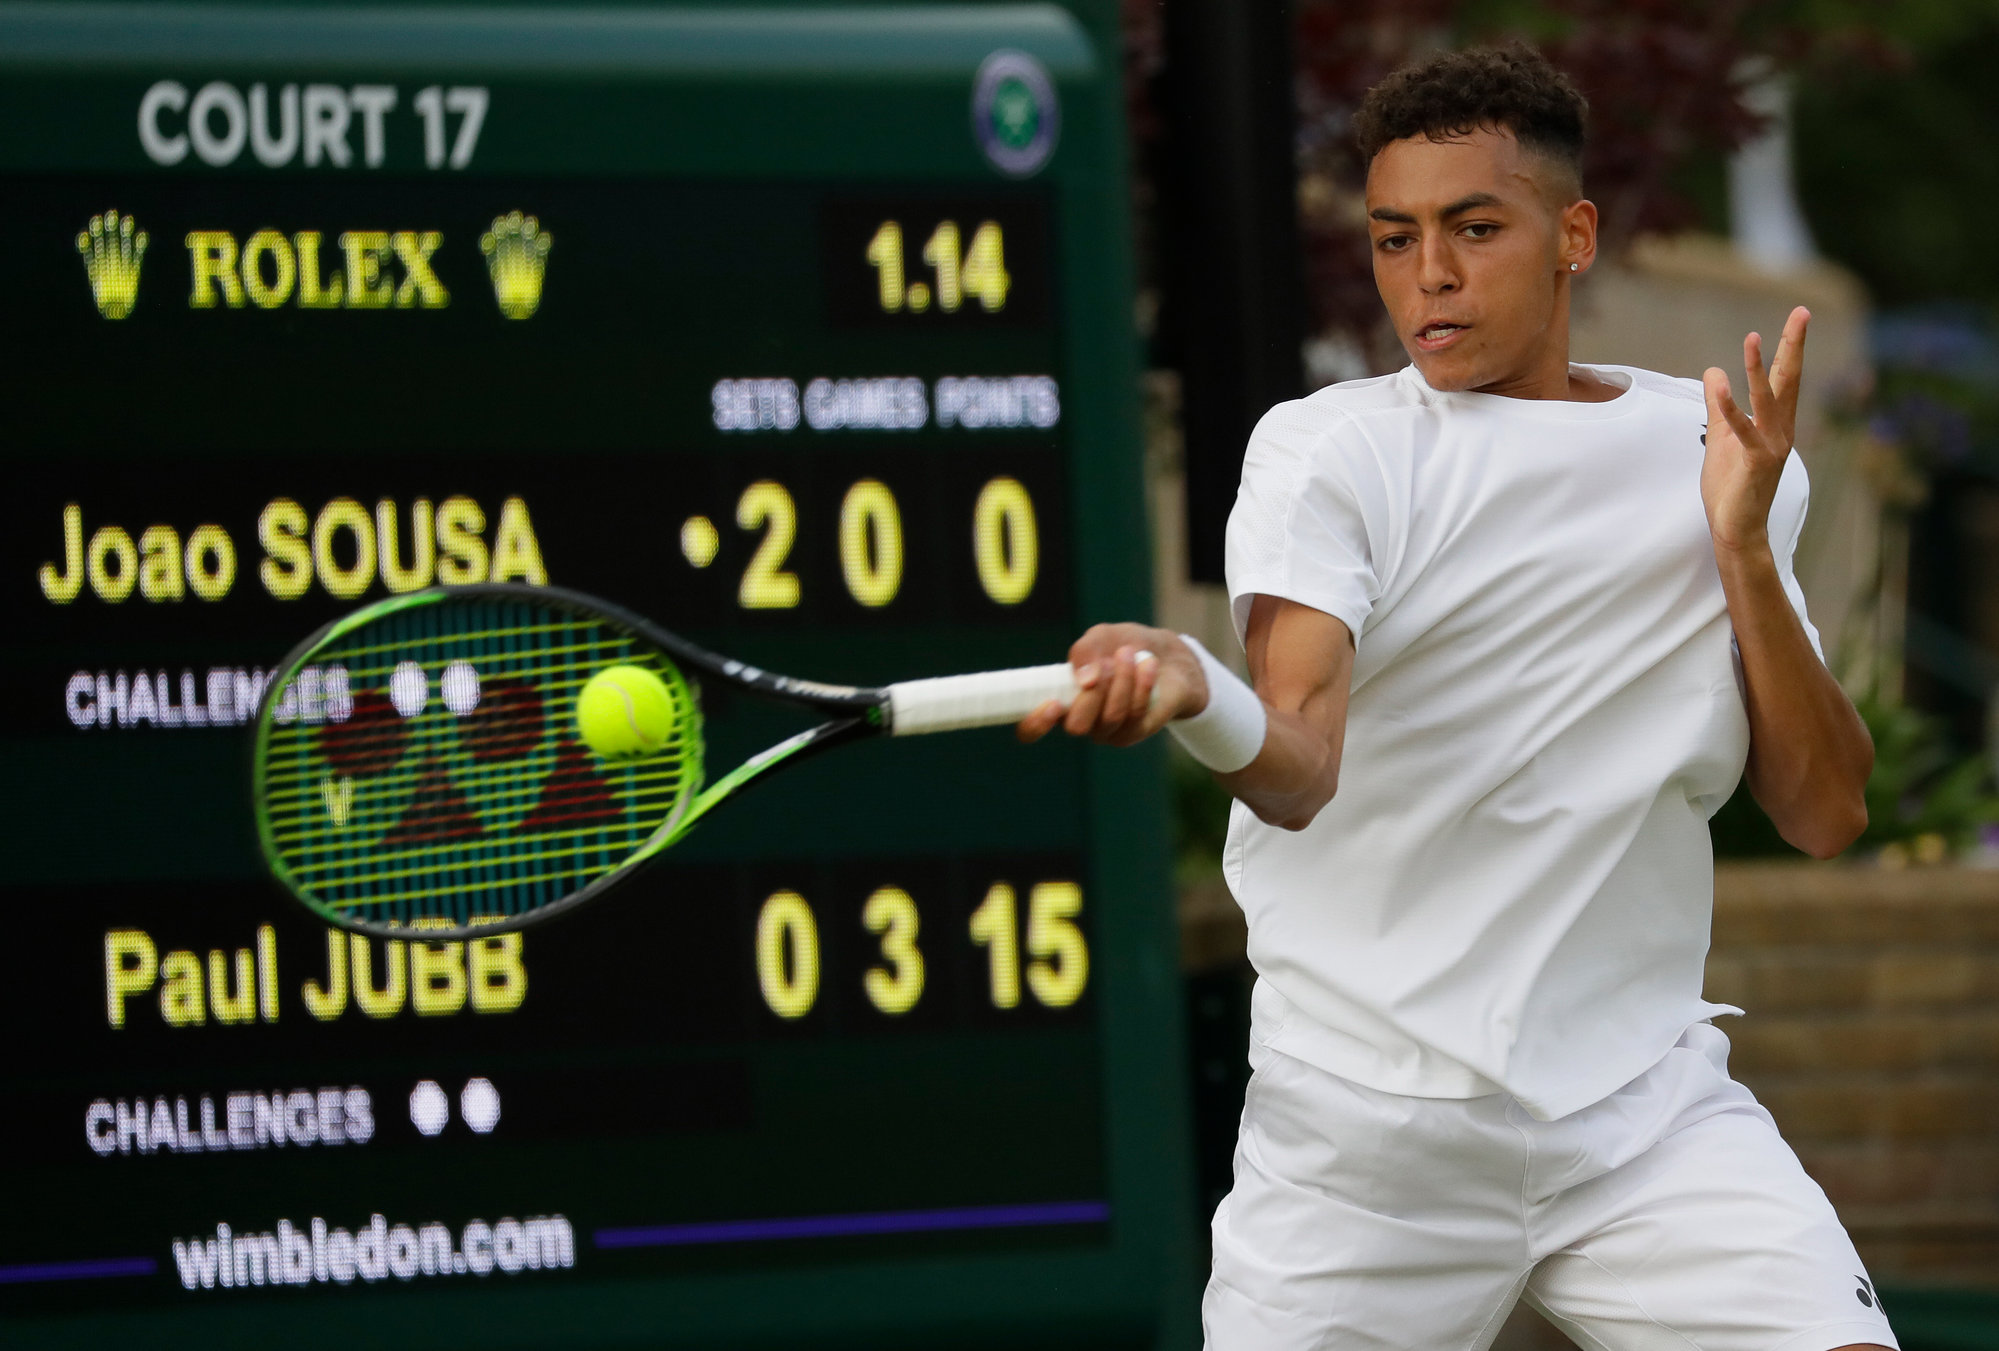 Paul Jubb, who won the NCAA singles championship playing for South Carolina, returns a shot to Joao Sousa in his straight-set loss in a first-round match of Wimbledon on Tuesday.